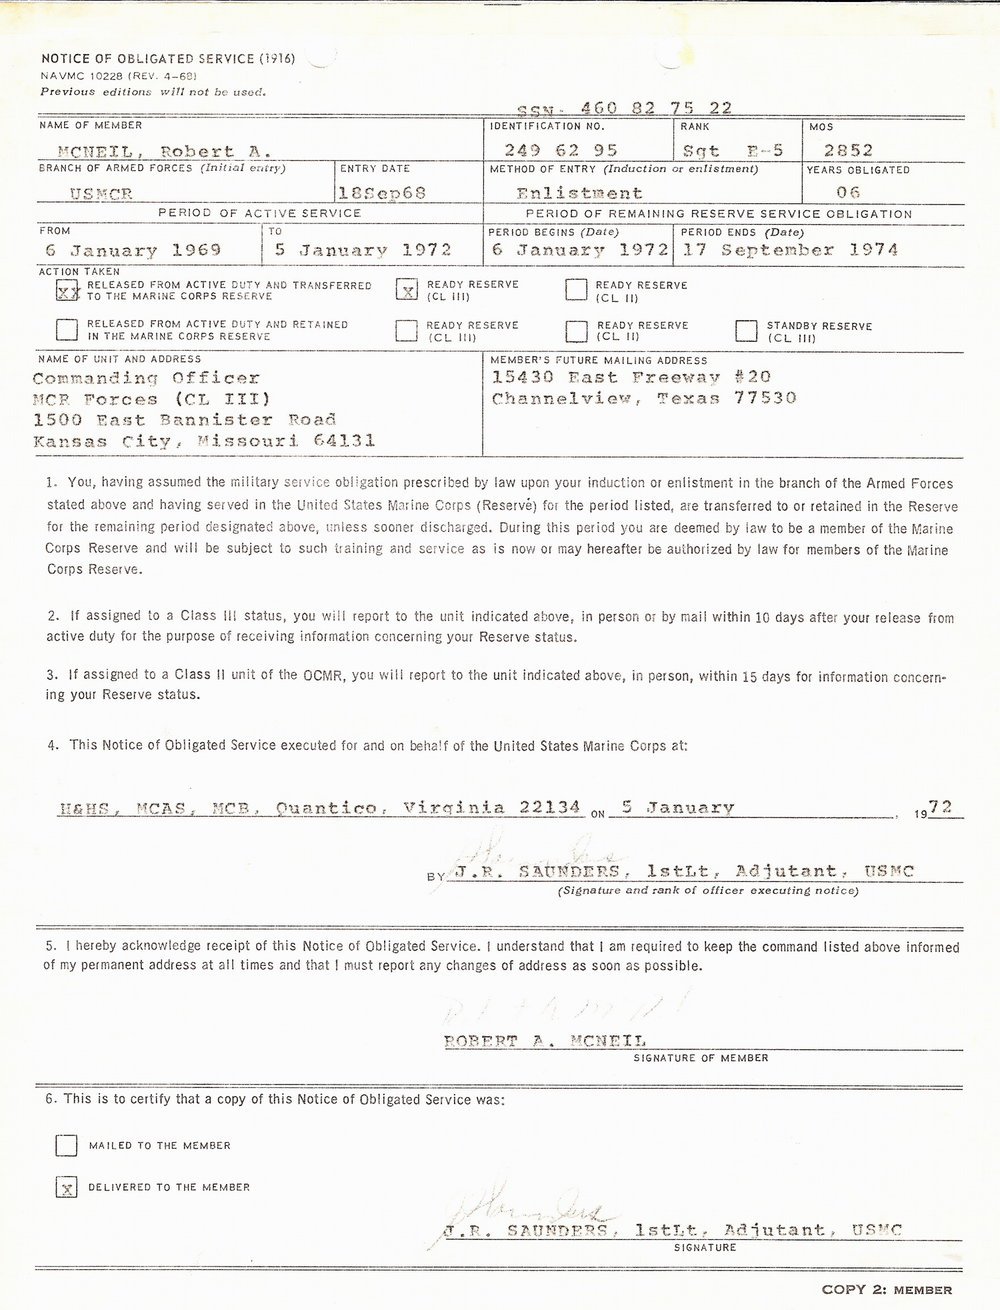 Bob McNeil - January 5, 1972 - Age 22 - U.S. Marine Corps - Notice of Obligated Service